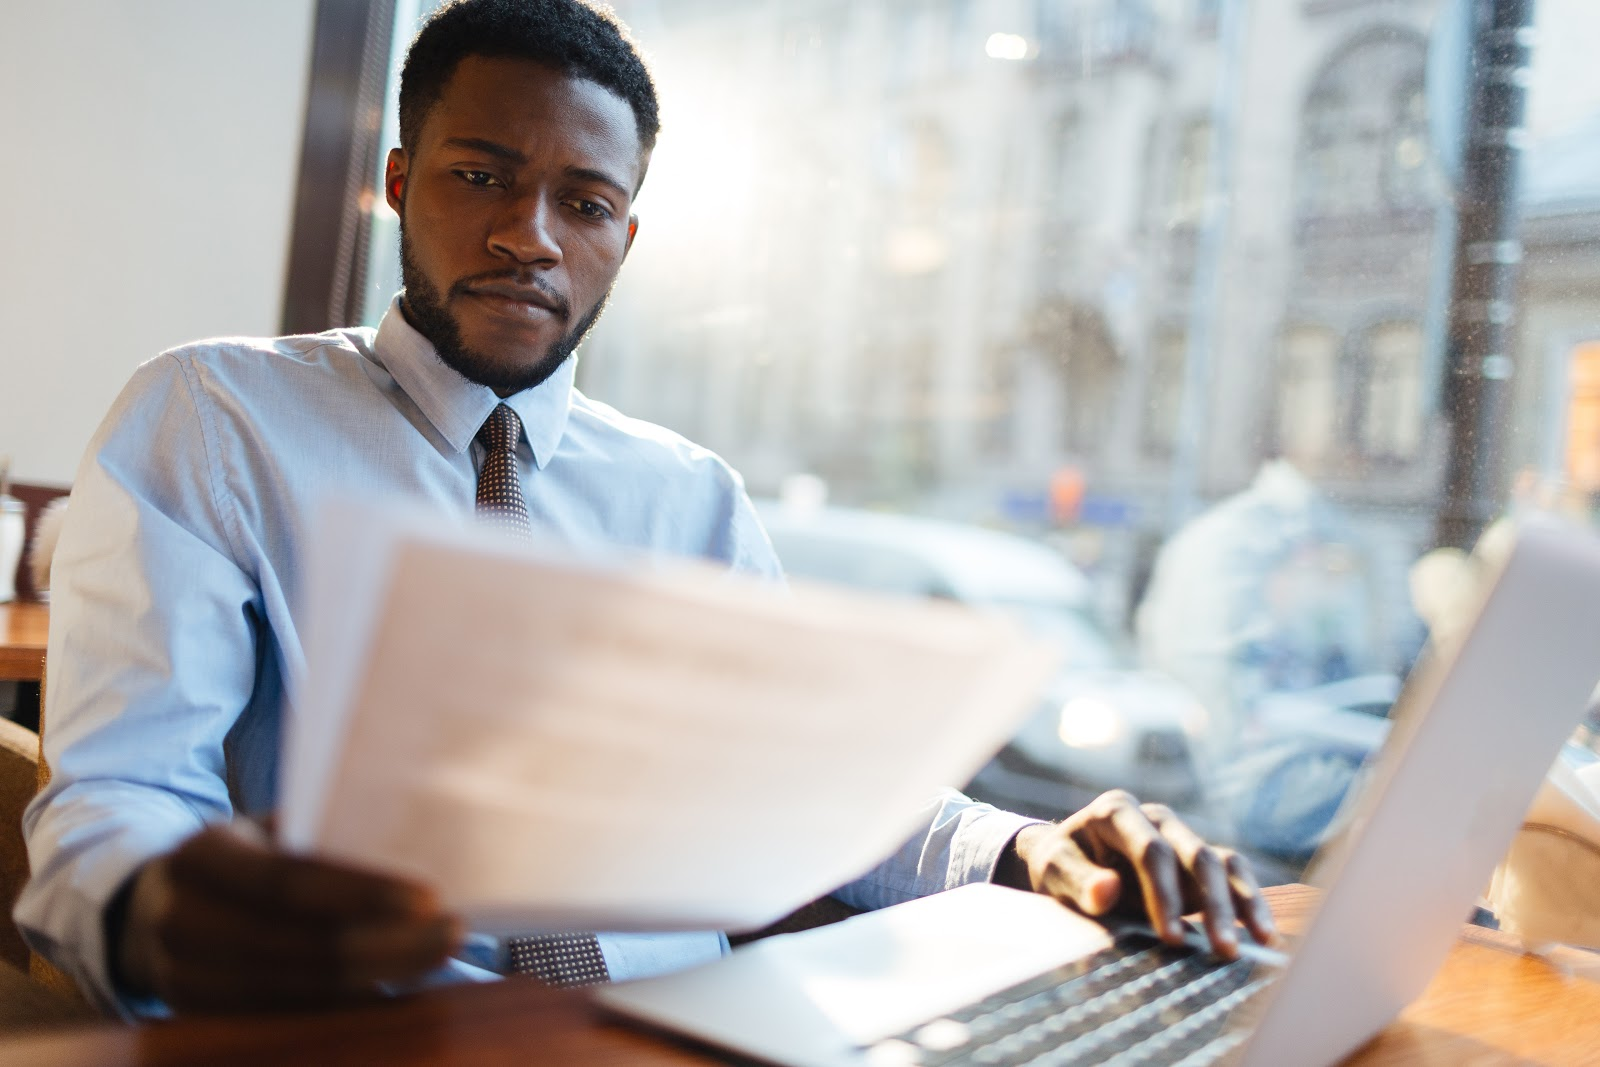 business analyst intern: man reading some documents